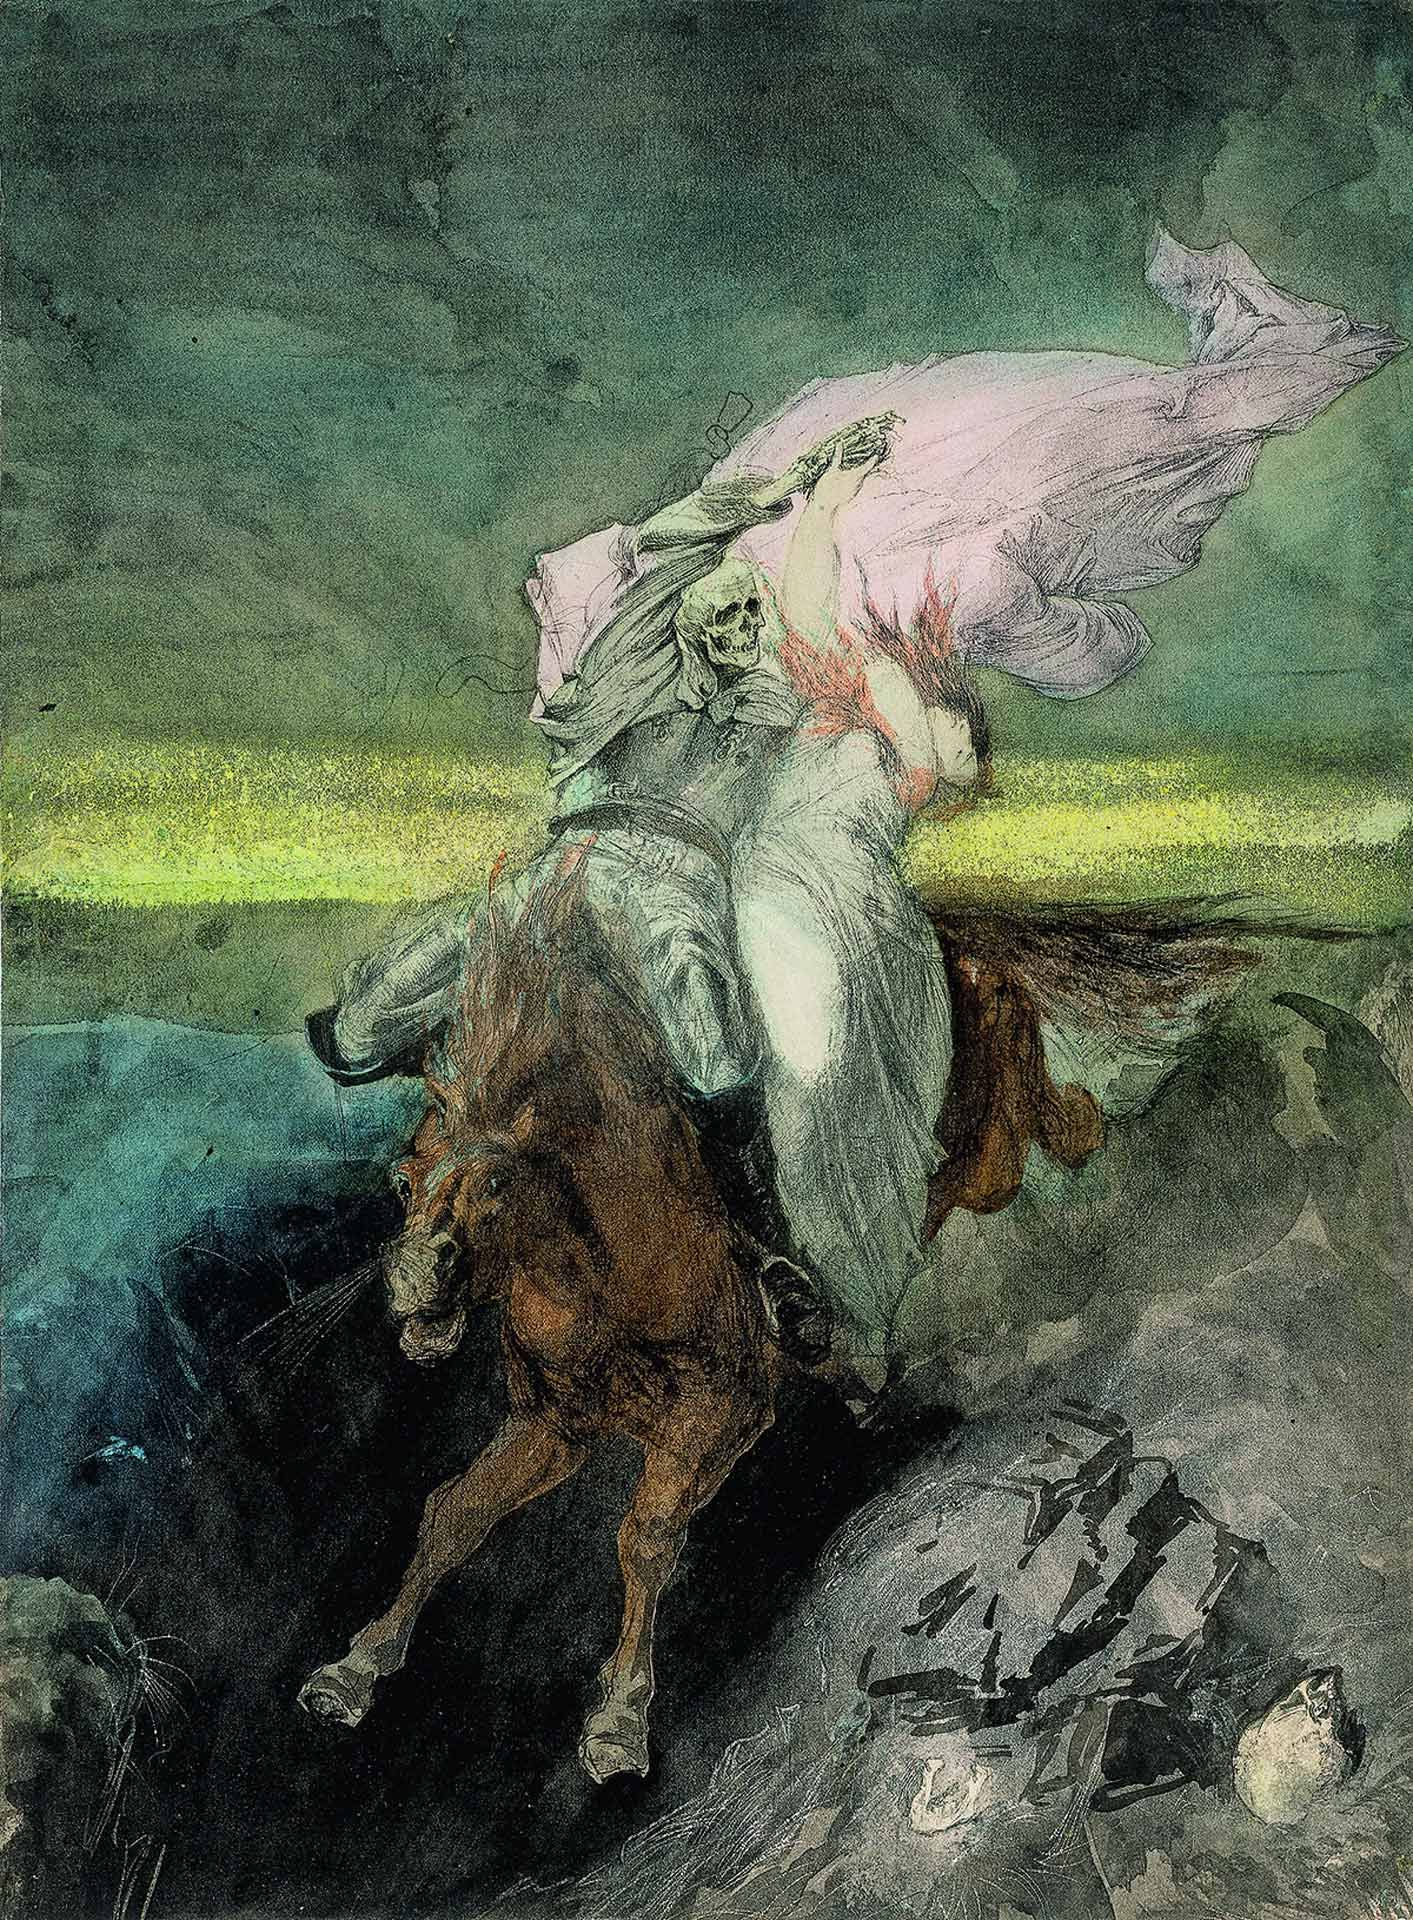 Hans Makart (1840-1884), The Abduction / Death and the Maiden, about 1863, pen and ink, ink wash, grattage, pastel (?), graphite. MMFA, purchase, Claude Dalphond Fund in memory of Gisèle Lachance